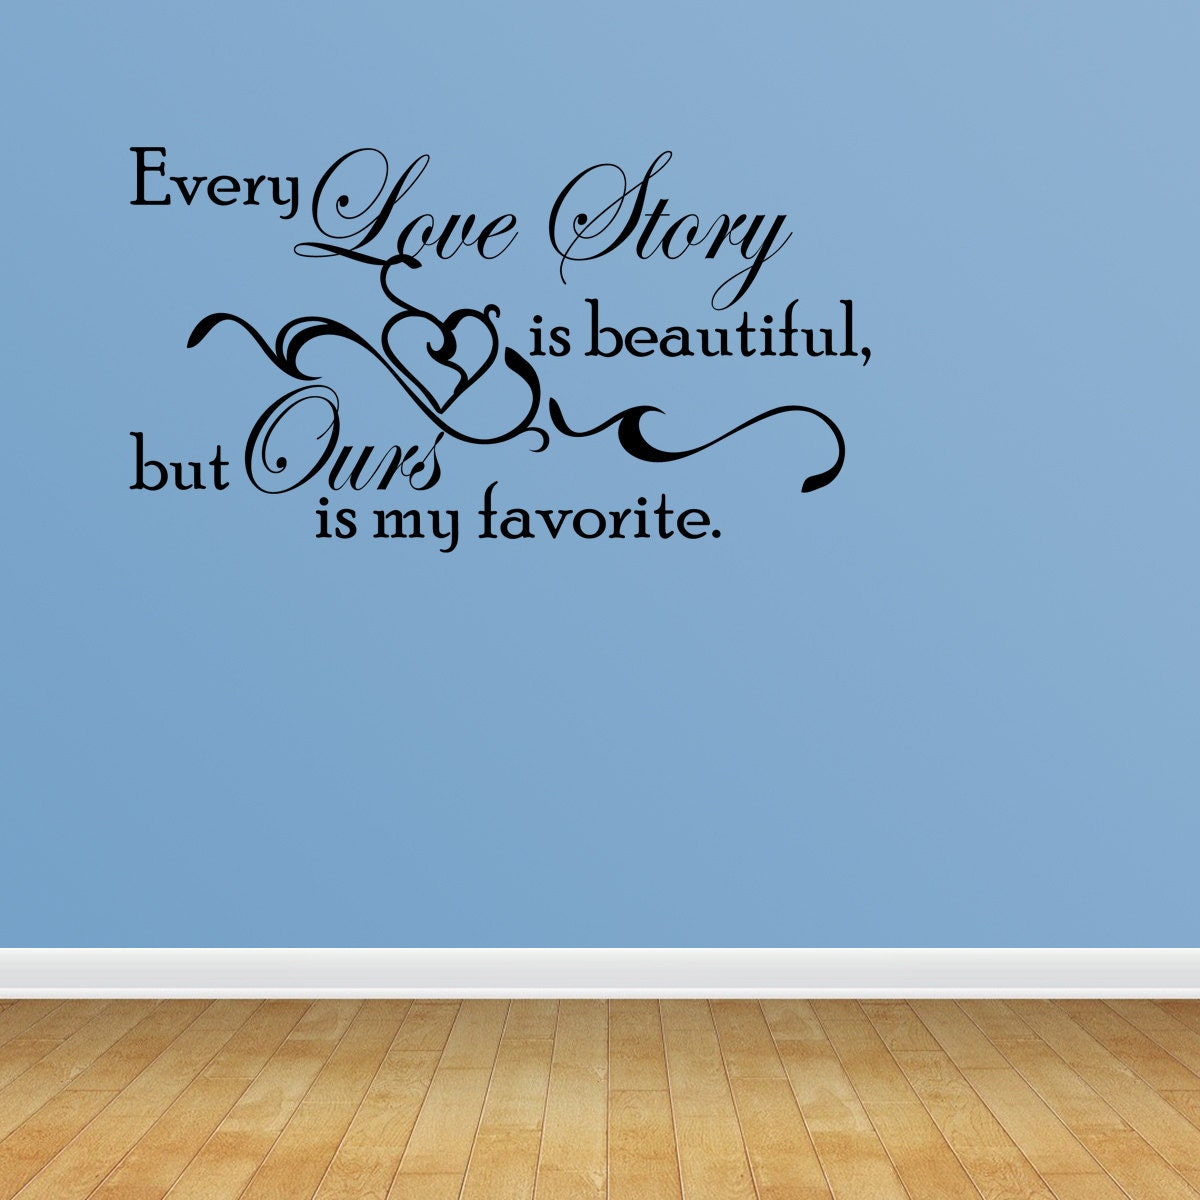 wall stickers every love story color the walls of your house wall stickers every love story welcome back